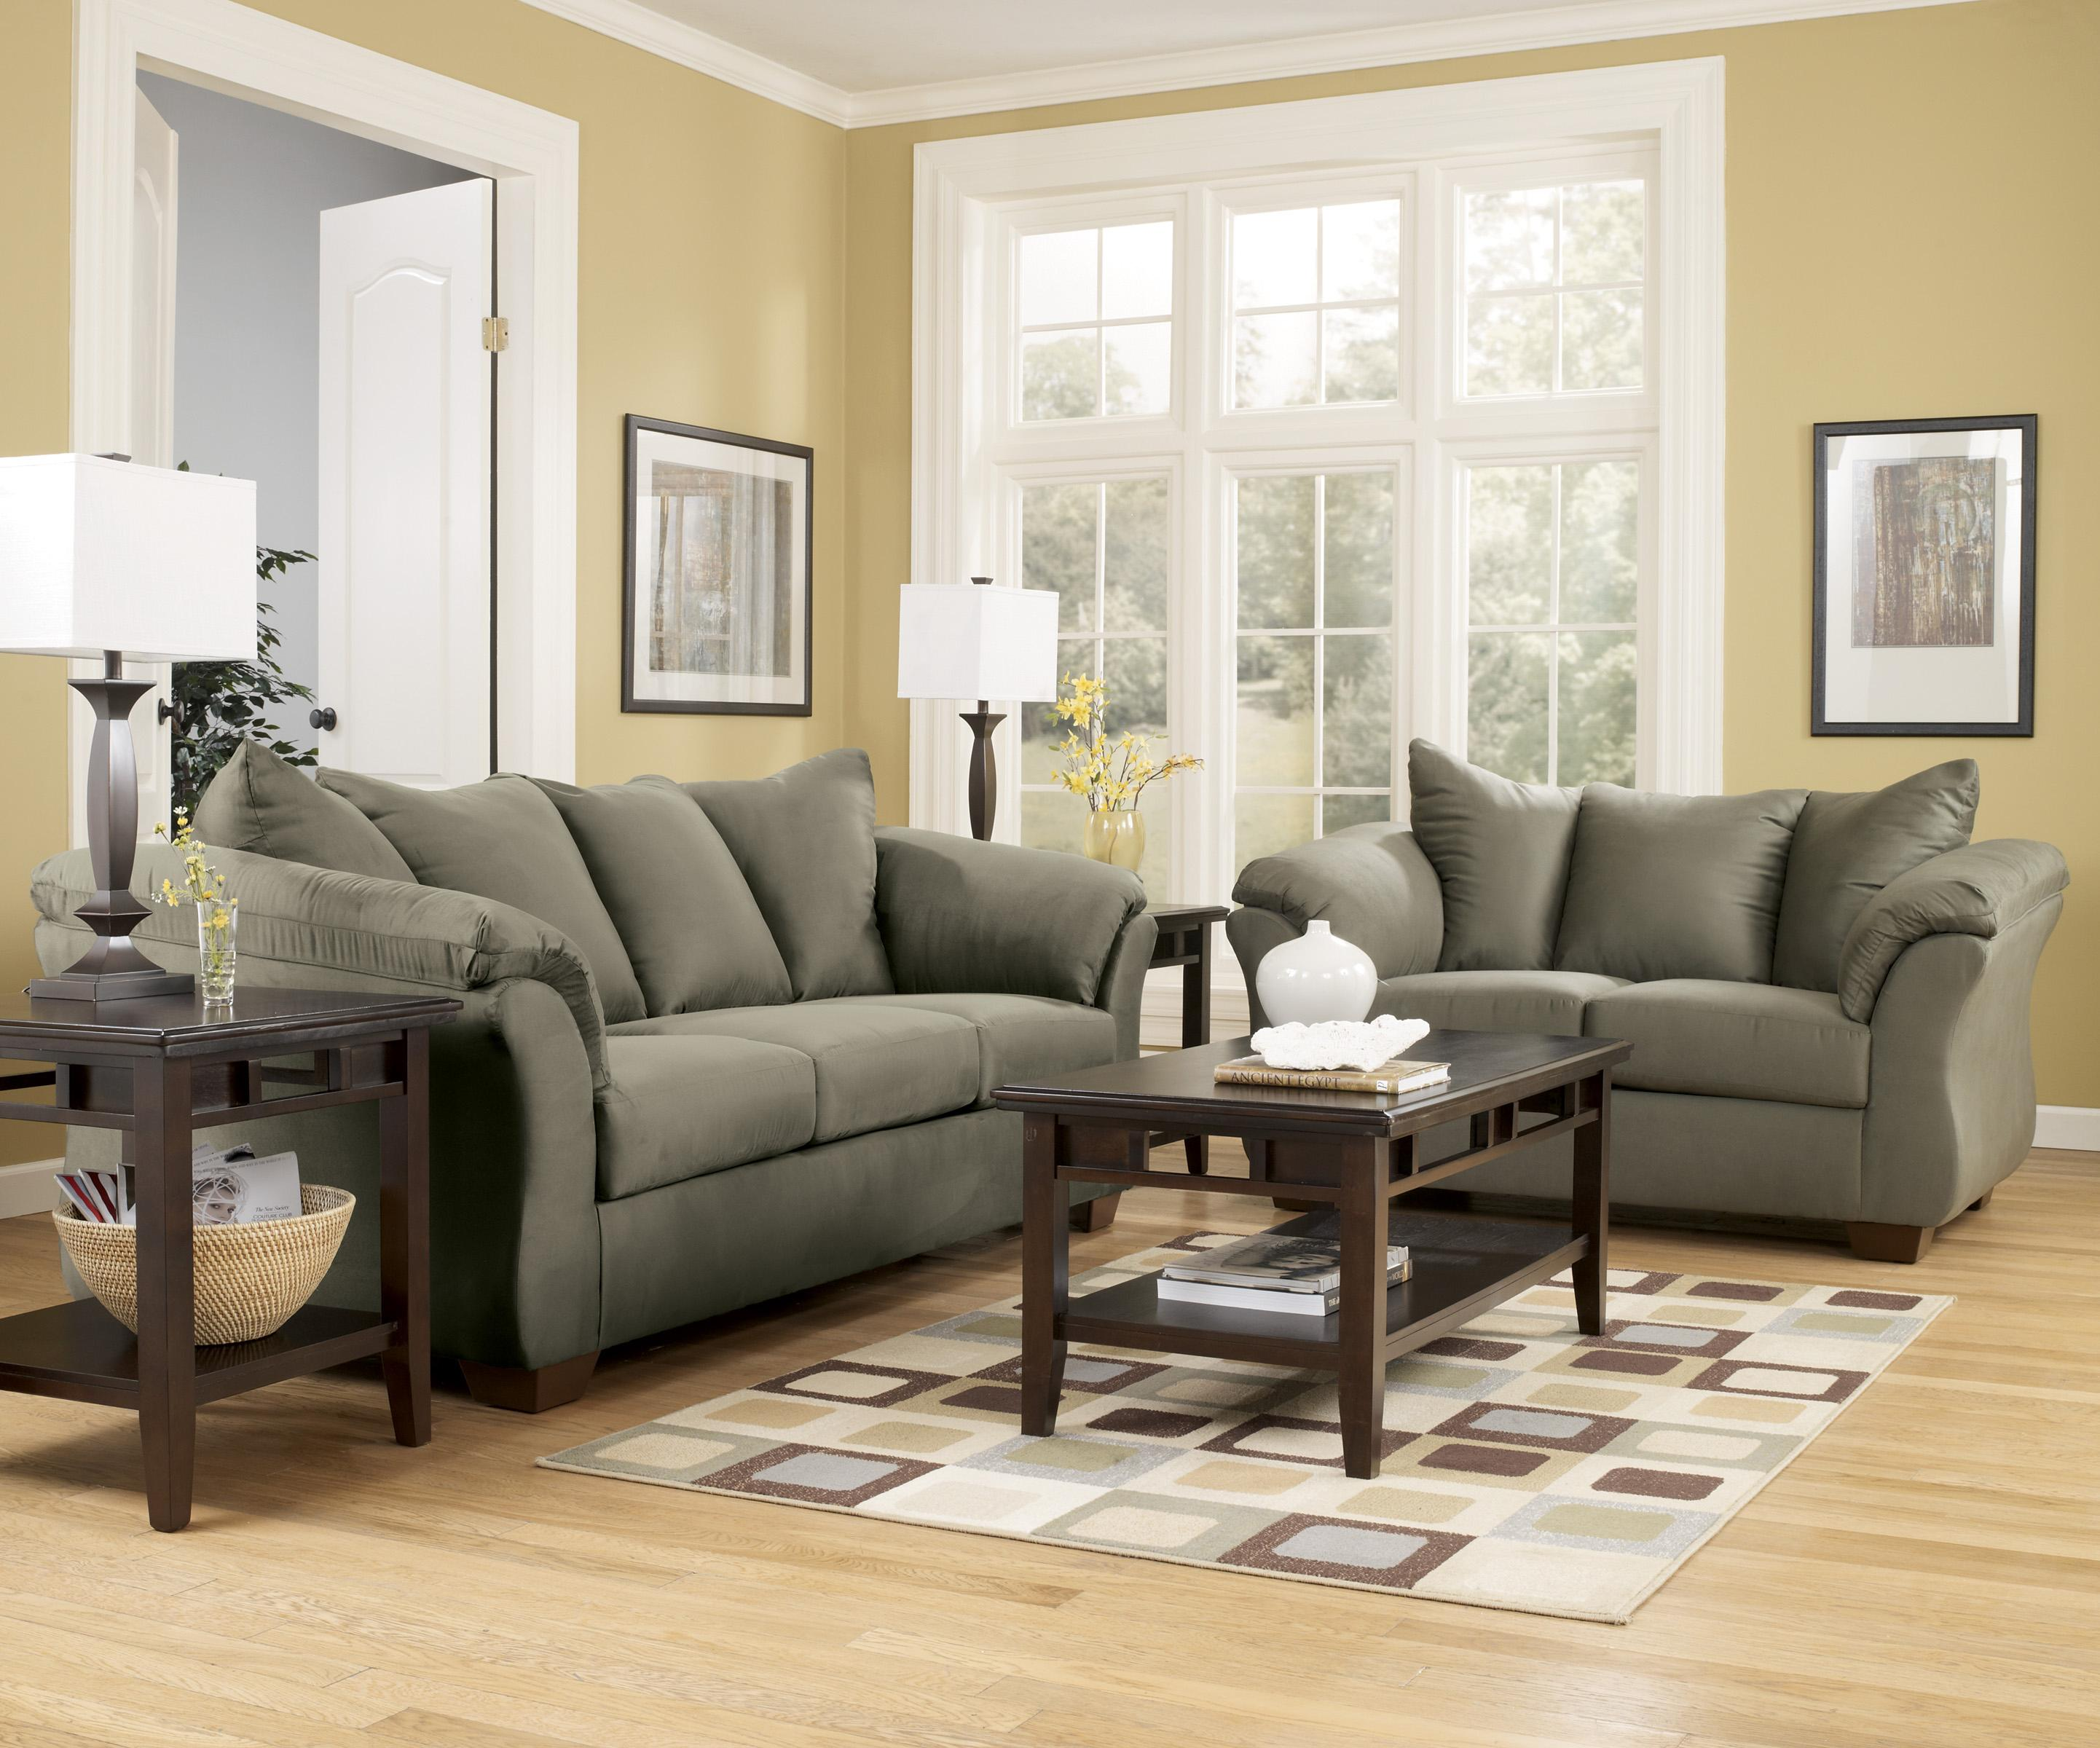 Signature Design By Ashley Darcy   Sage Contemporary Sectional Sofa With  Sweeping Pillow Arms | Wayside Furniture | Sectional Sofas